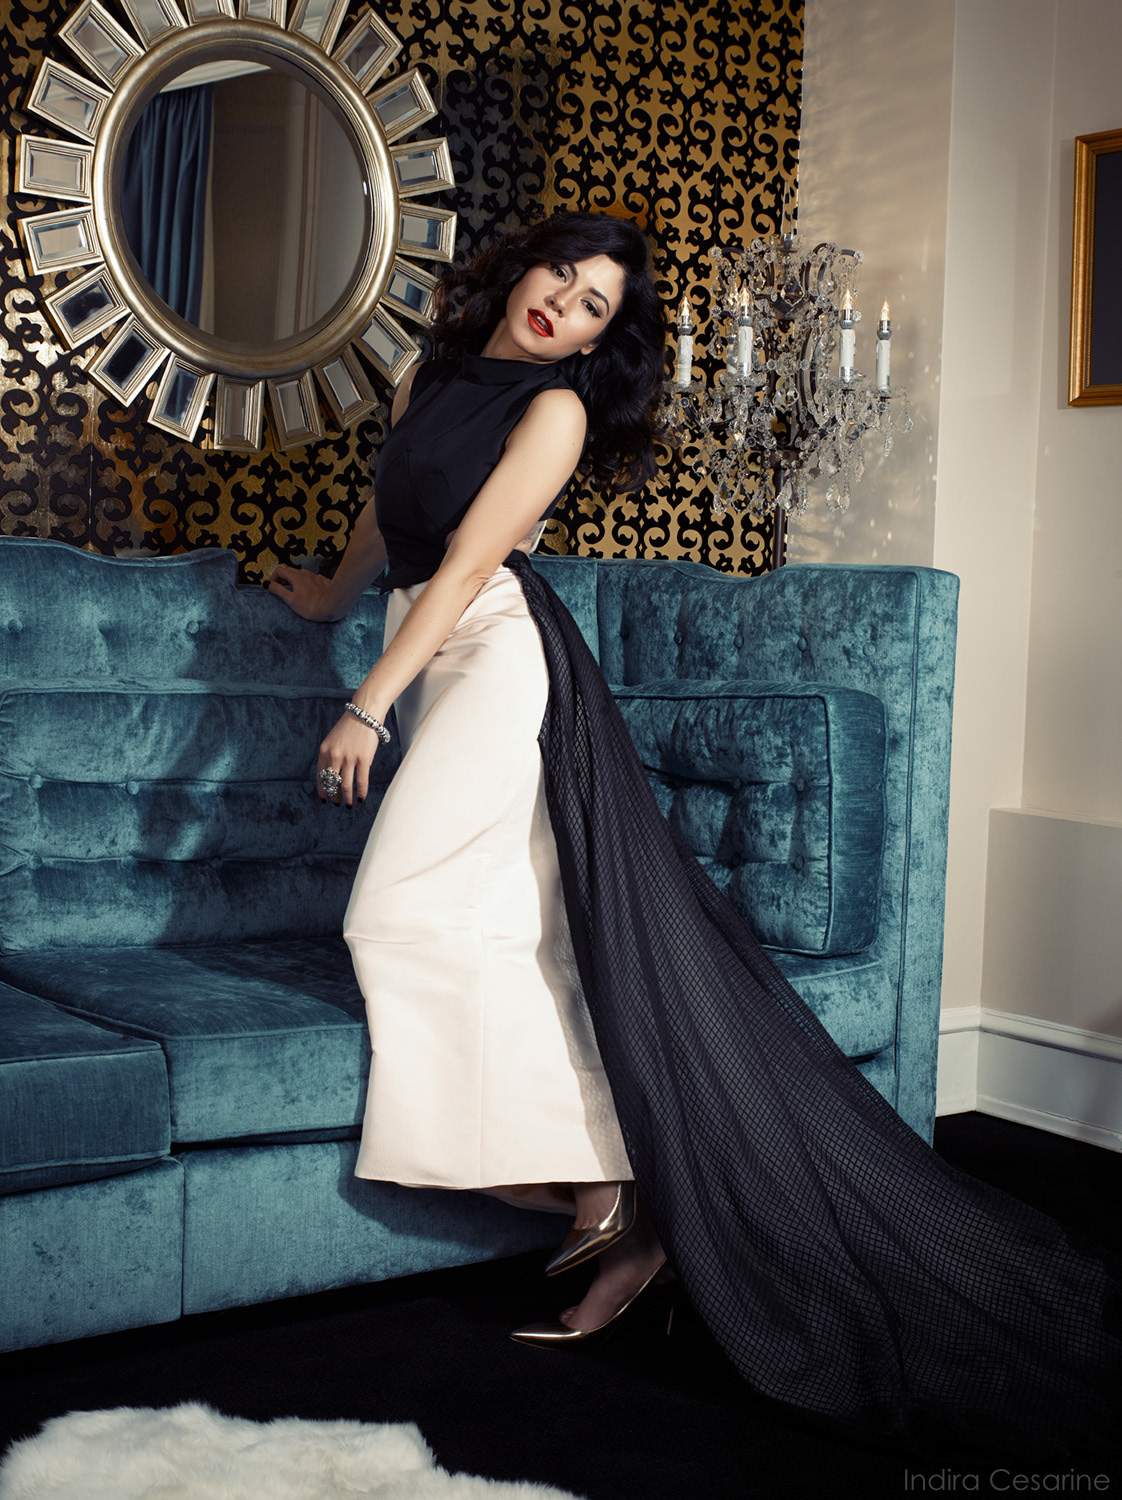 Marina-Diamonds-Photography-Indira-Cesarine-001.jpg